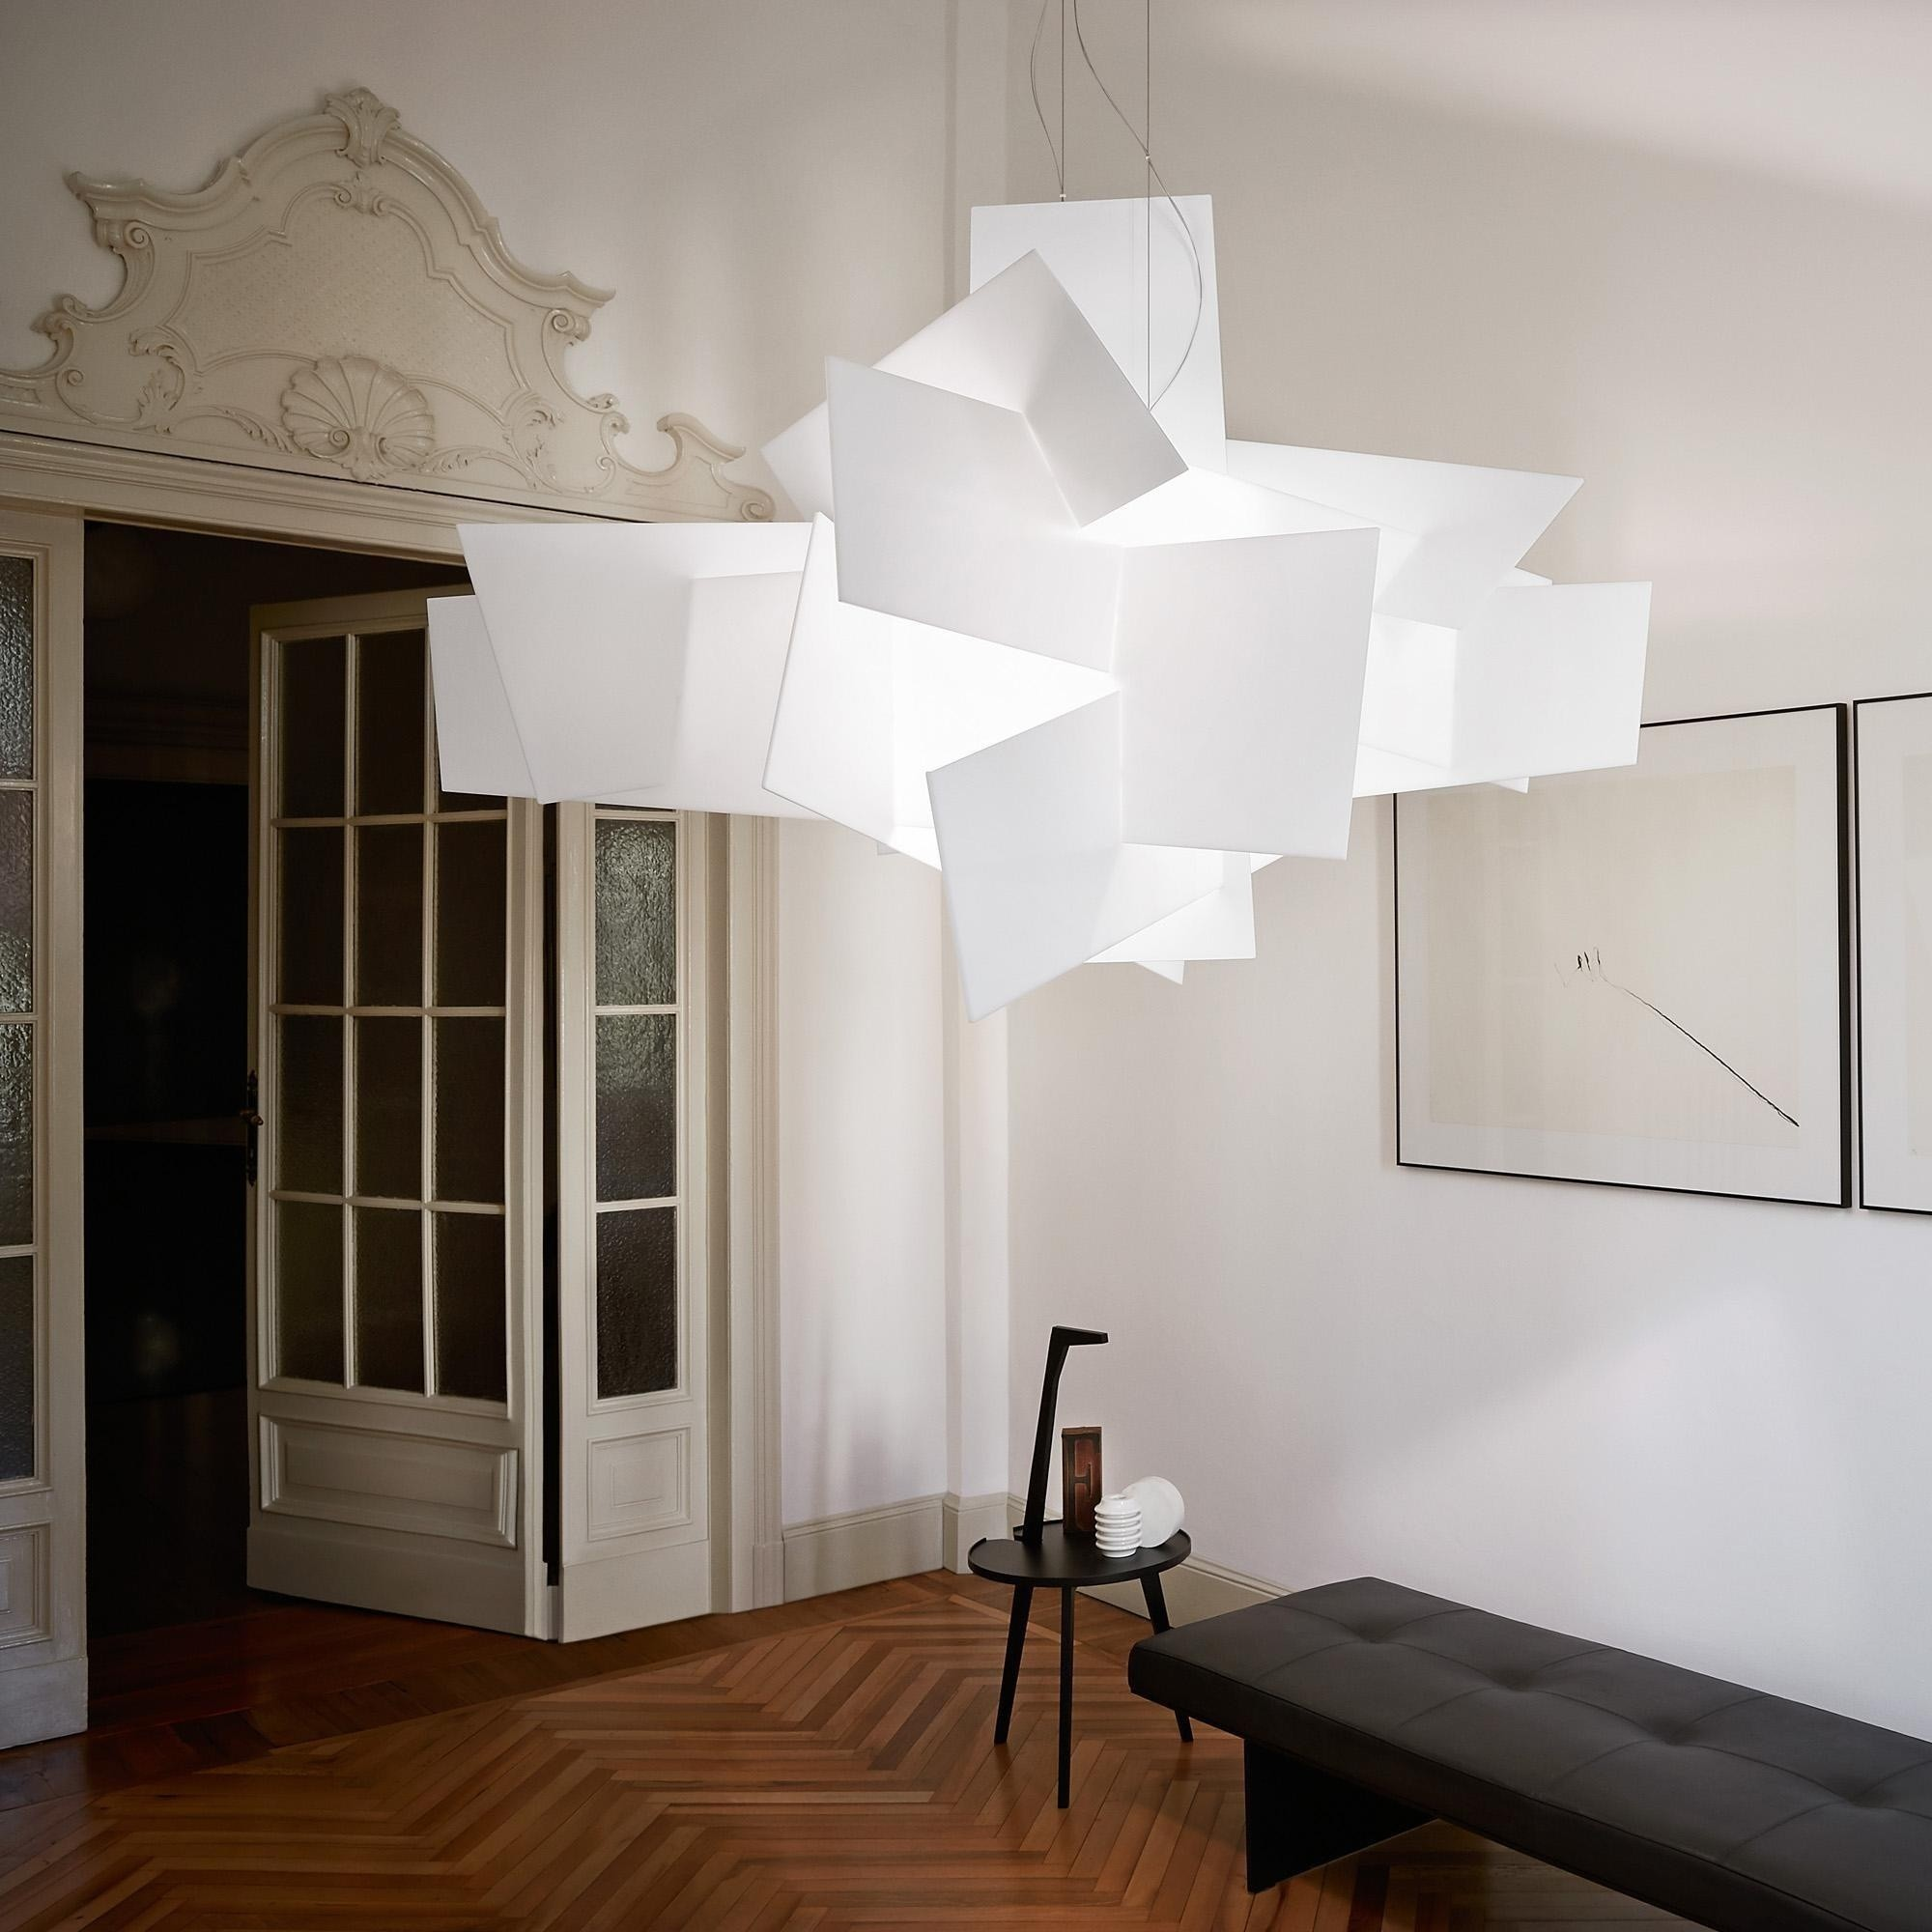 Foscarini_Big-Bang-XL-LED-Pendelleuchte_2000x2000-ID1078661-e77759944083e529618b5766fc0517dd